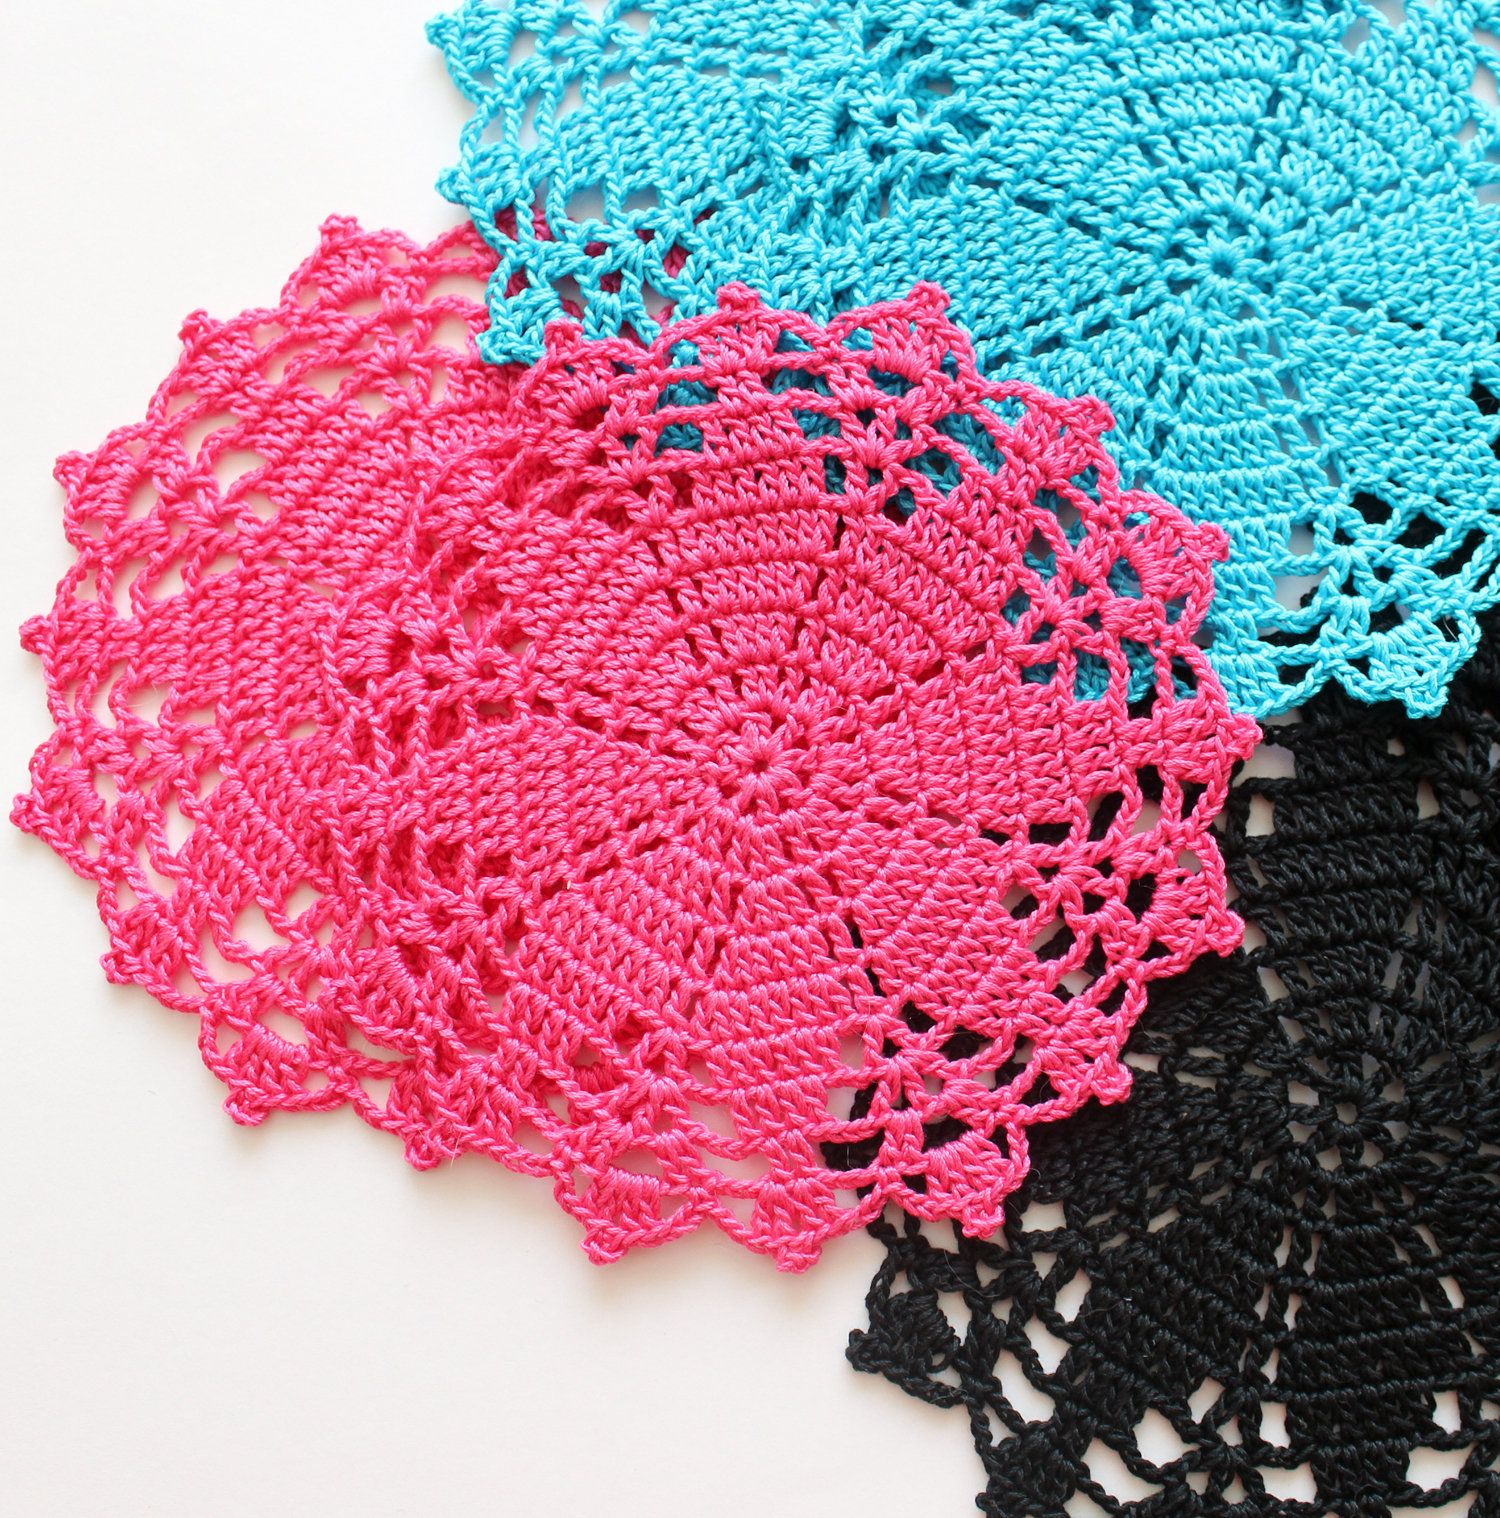 Crochet Coasters Small Round Doilies Placemats Hot Pink Etsy Crochet Coasters Crochet Crochet Doilies